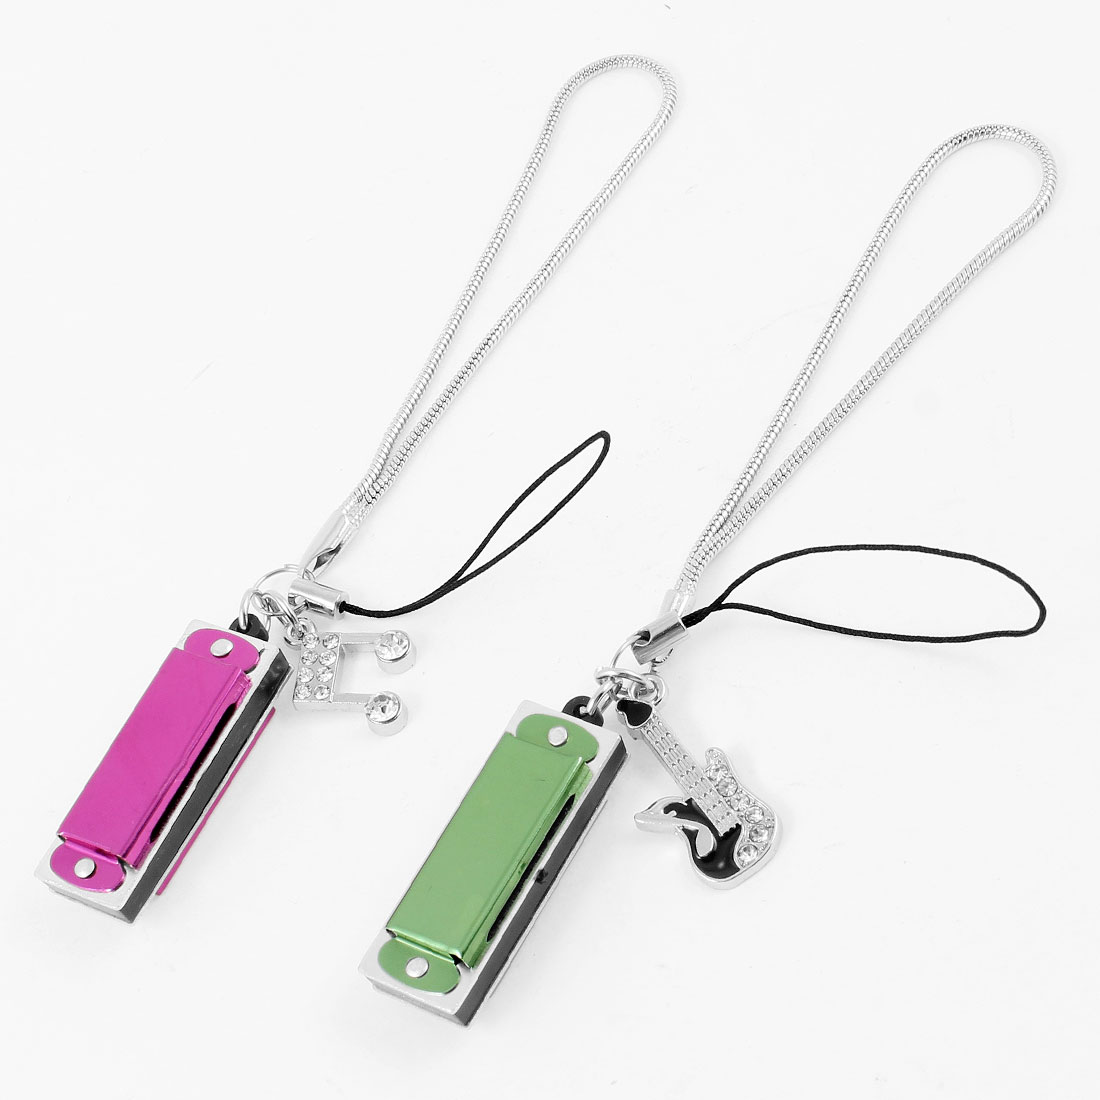 Pair Fuchsia Green Harmonica Style Pendants Phone Strap Gift for Lovers